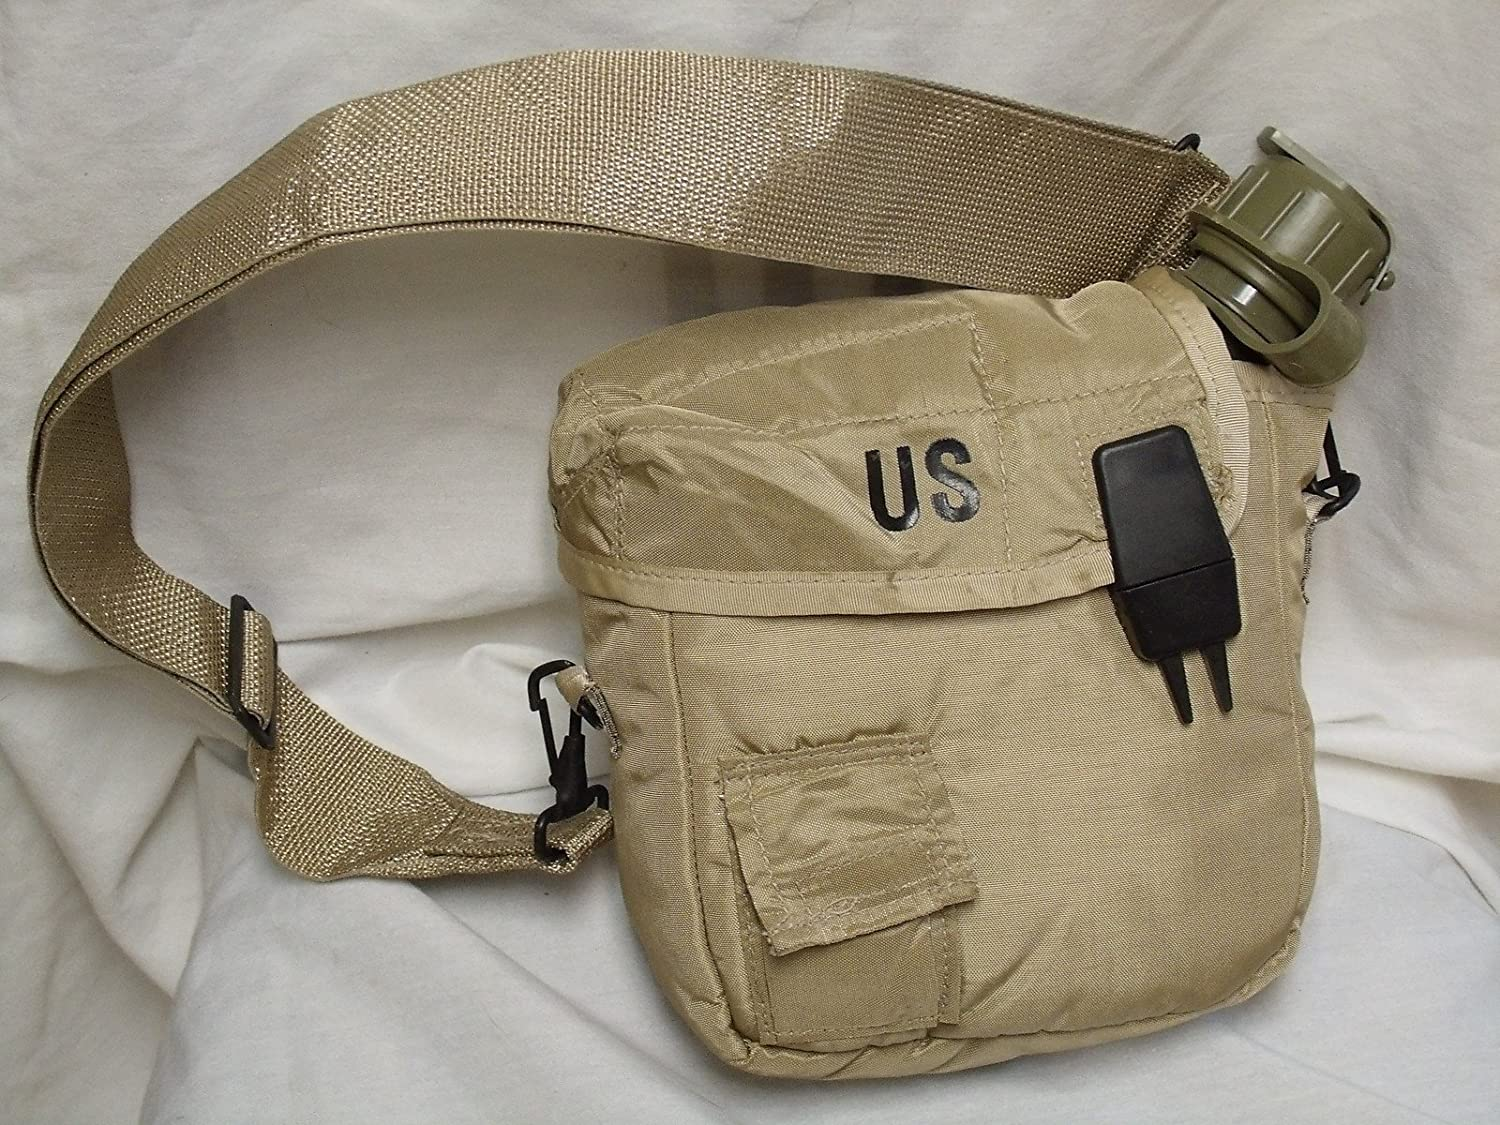 Military Issue 2 Quart Water Canteen with New Issue Insulated Carrier and Shoulder Sling by Military issue